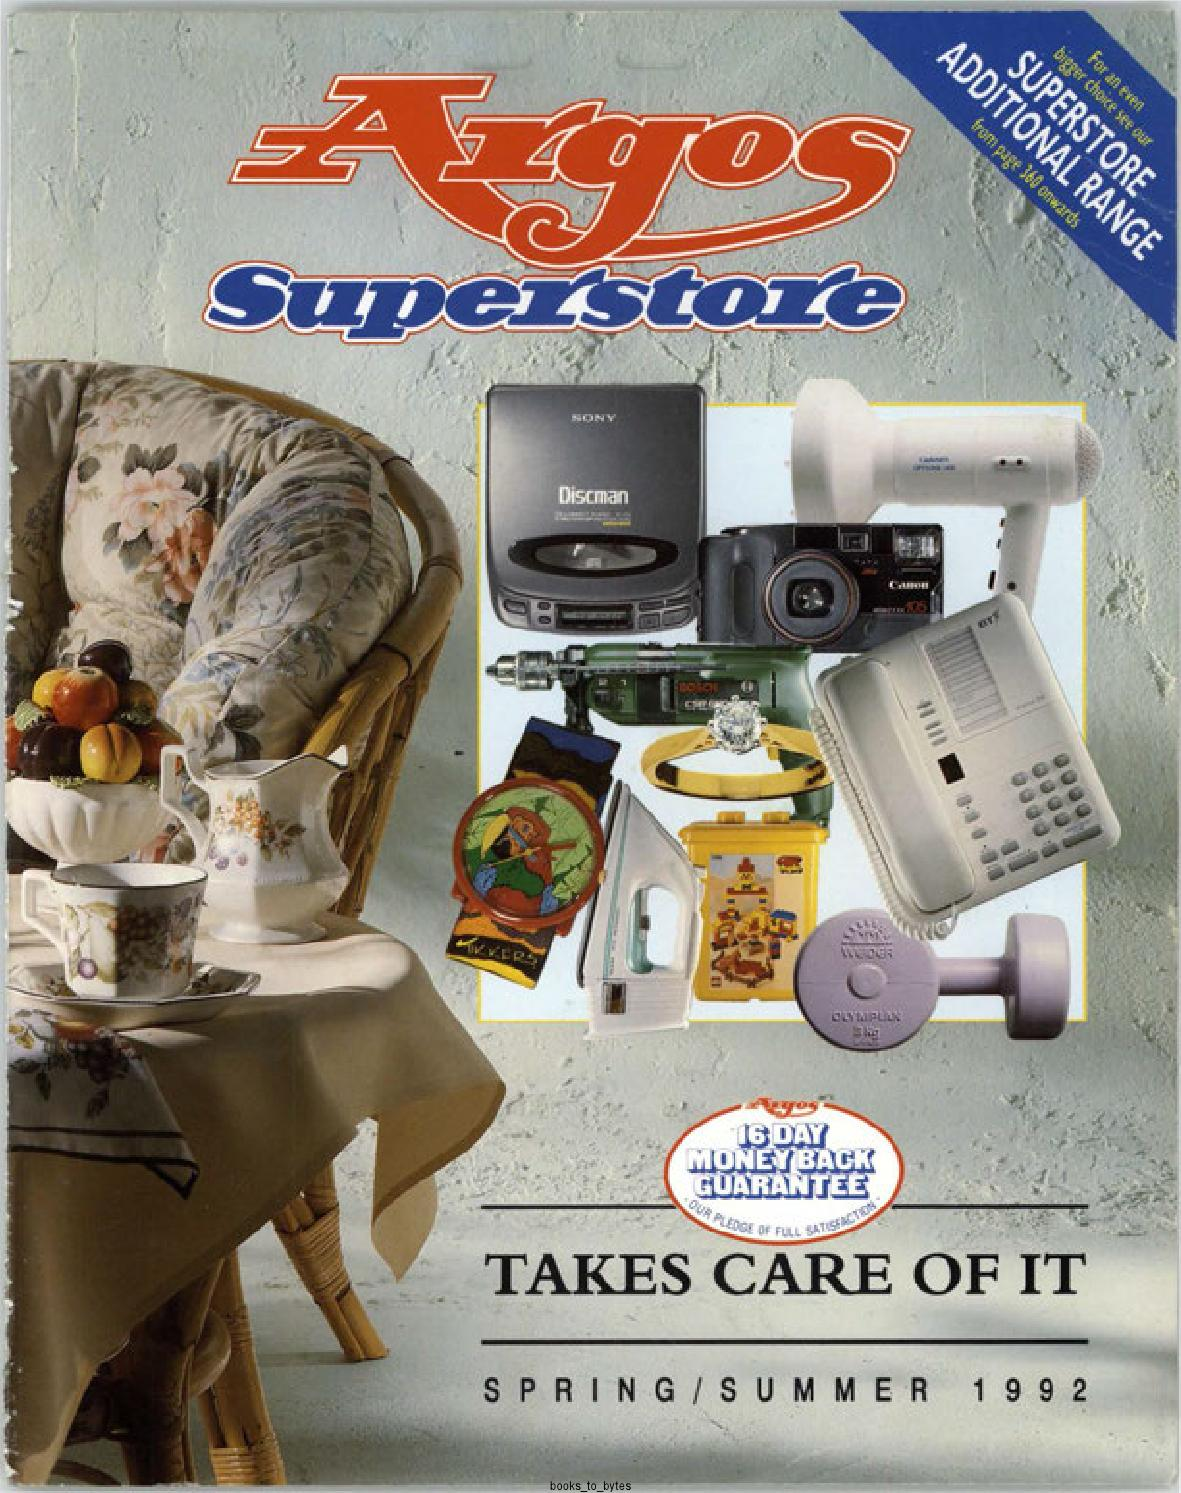 argos superstore 1992 spring summer by retromash issuu. Black Bedroom Furniture Sets. Home Design Ideas